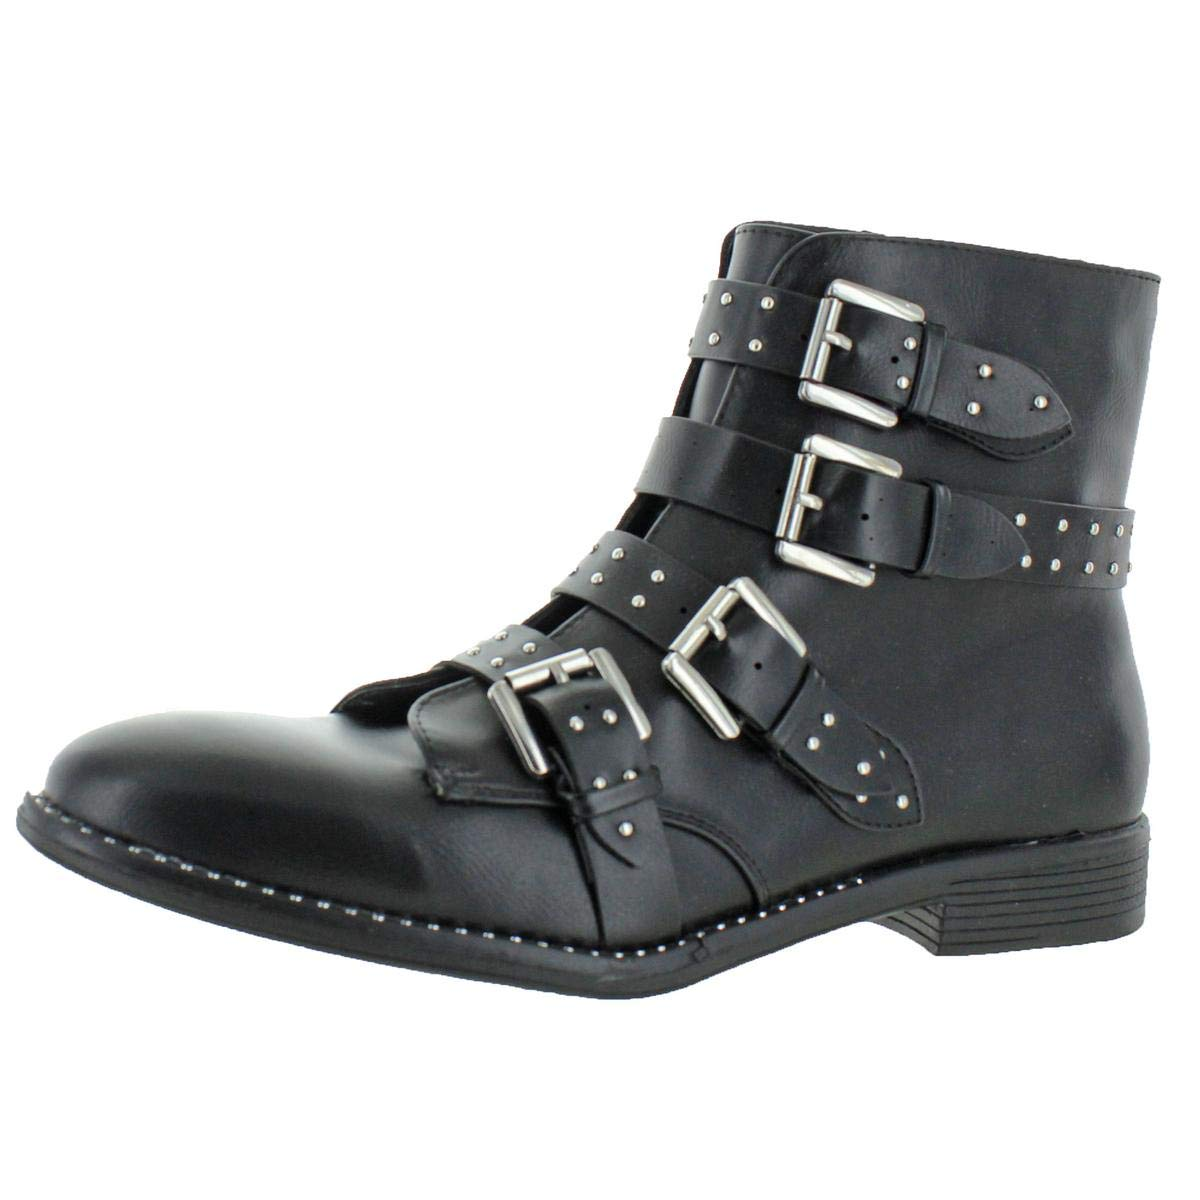 fd5bb6c85f5 Amazon.com | Steve Madden Womens Reena Studded Bootie Ankle Boots ...